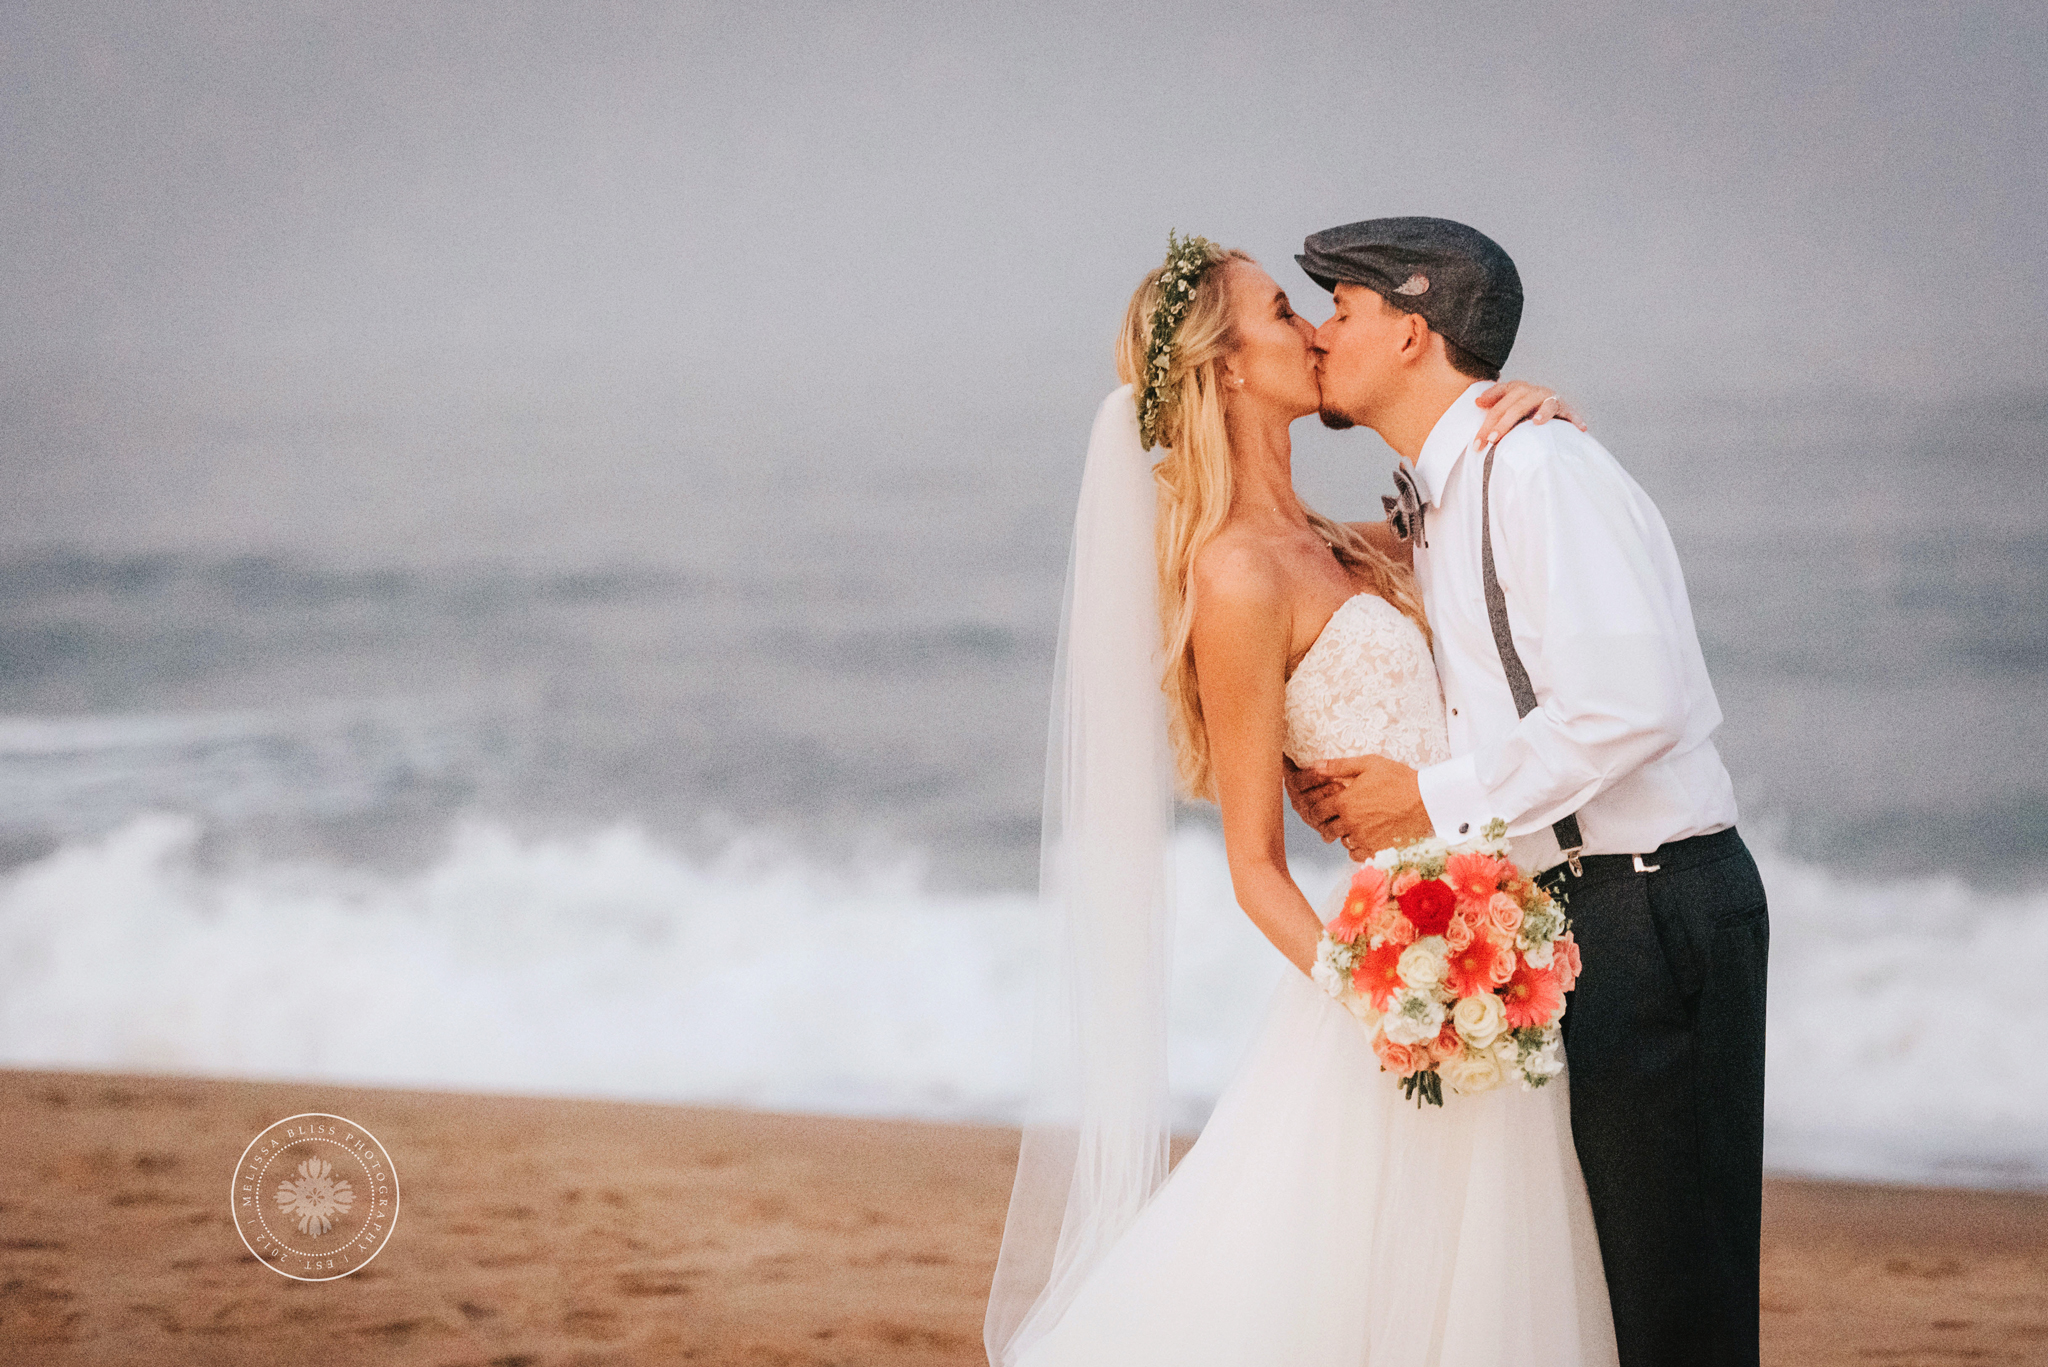 bride-and-groom-portrait-after-beach-wedding-shifting-sands-virginia-beach-wedding-photographer